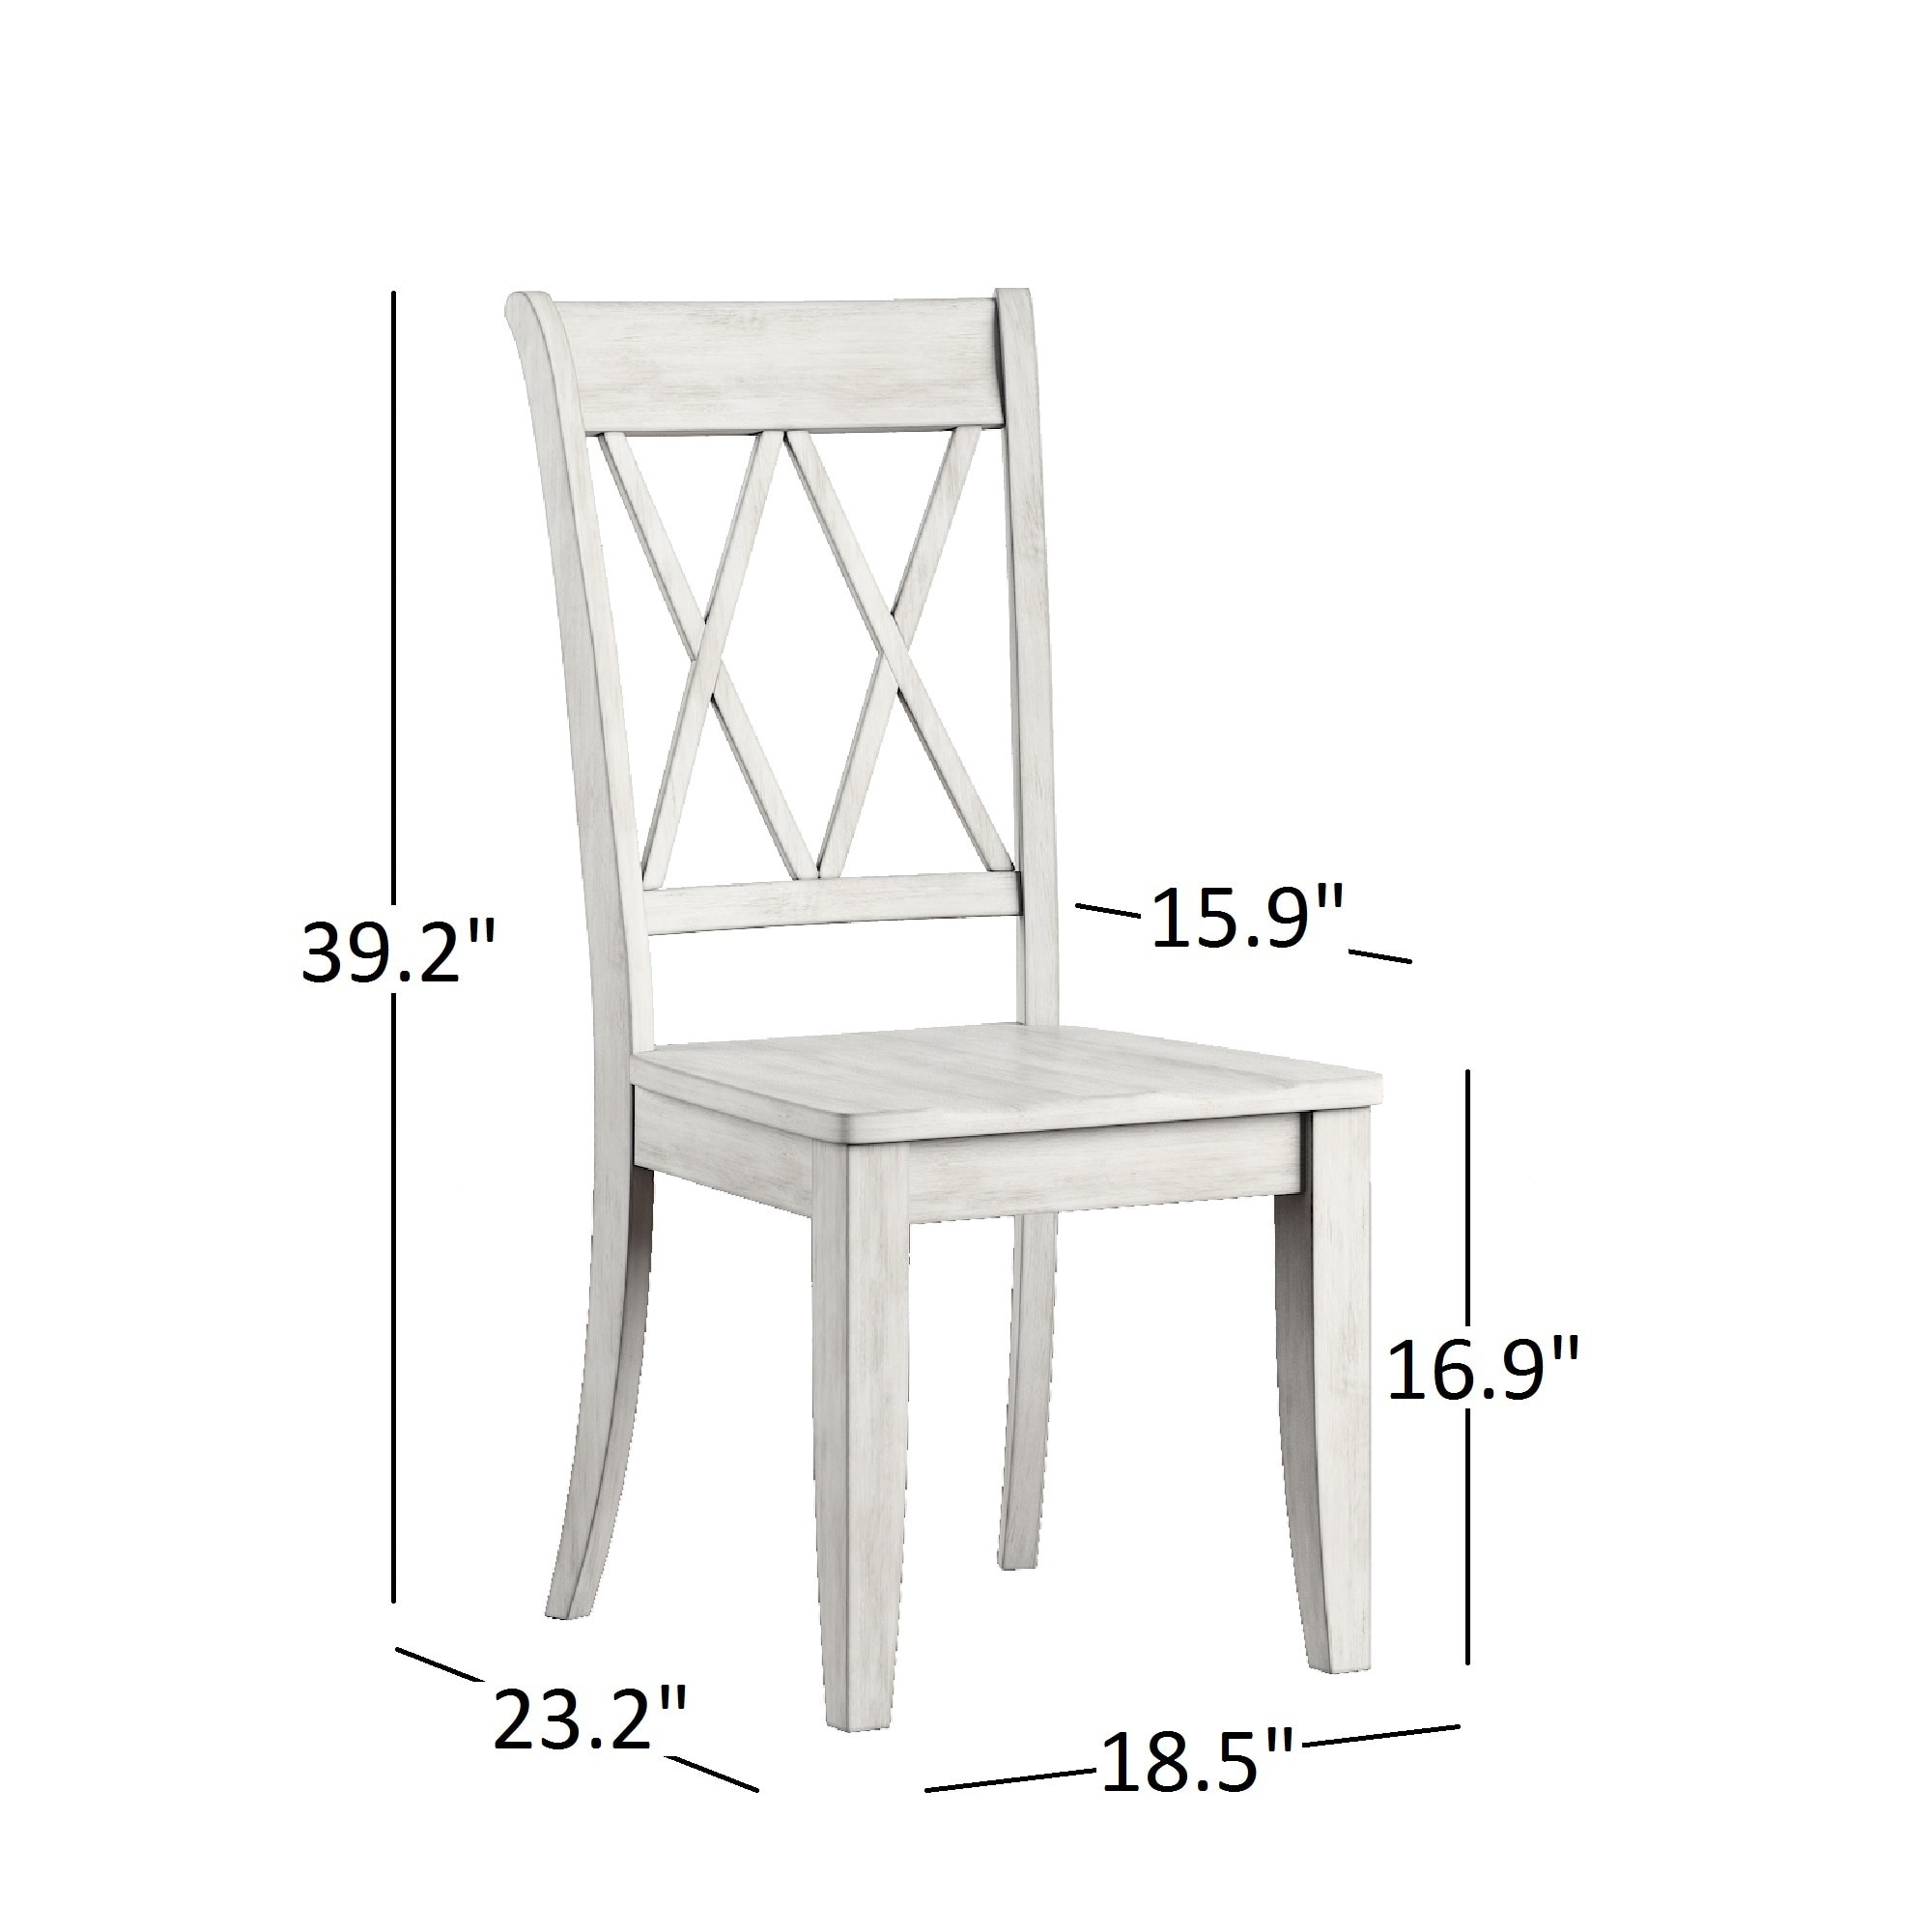 Eleanor Double X Back Wood Dining Chair (Set of 2) by iNSPIRE Q Classic -  Free Shipping Today - Overstock.com - 20156551